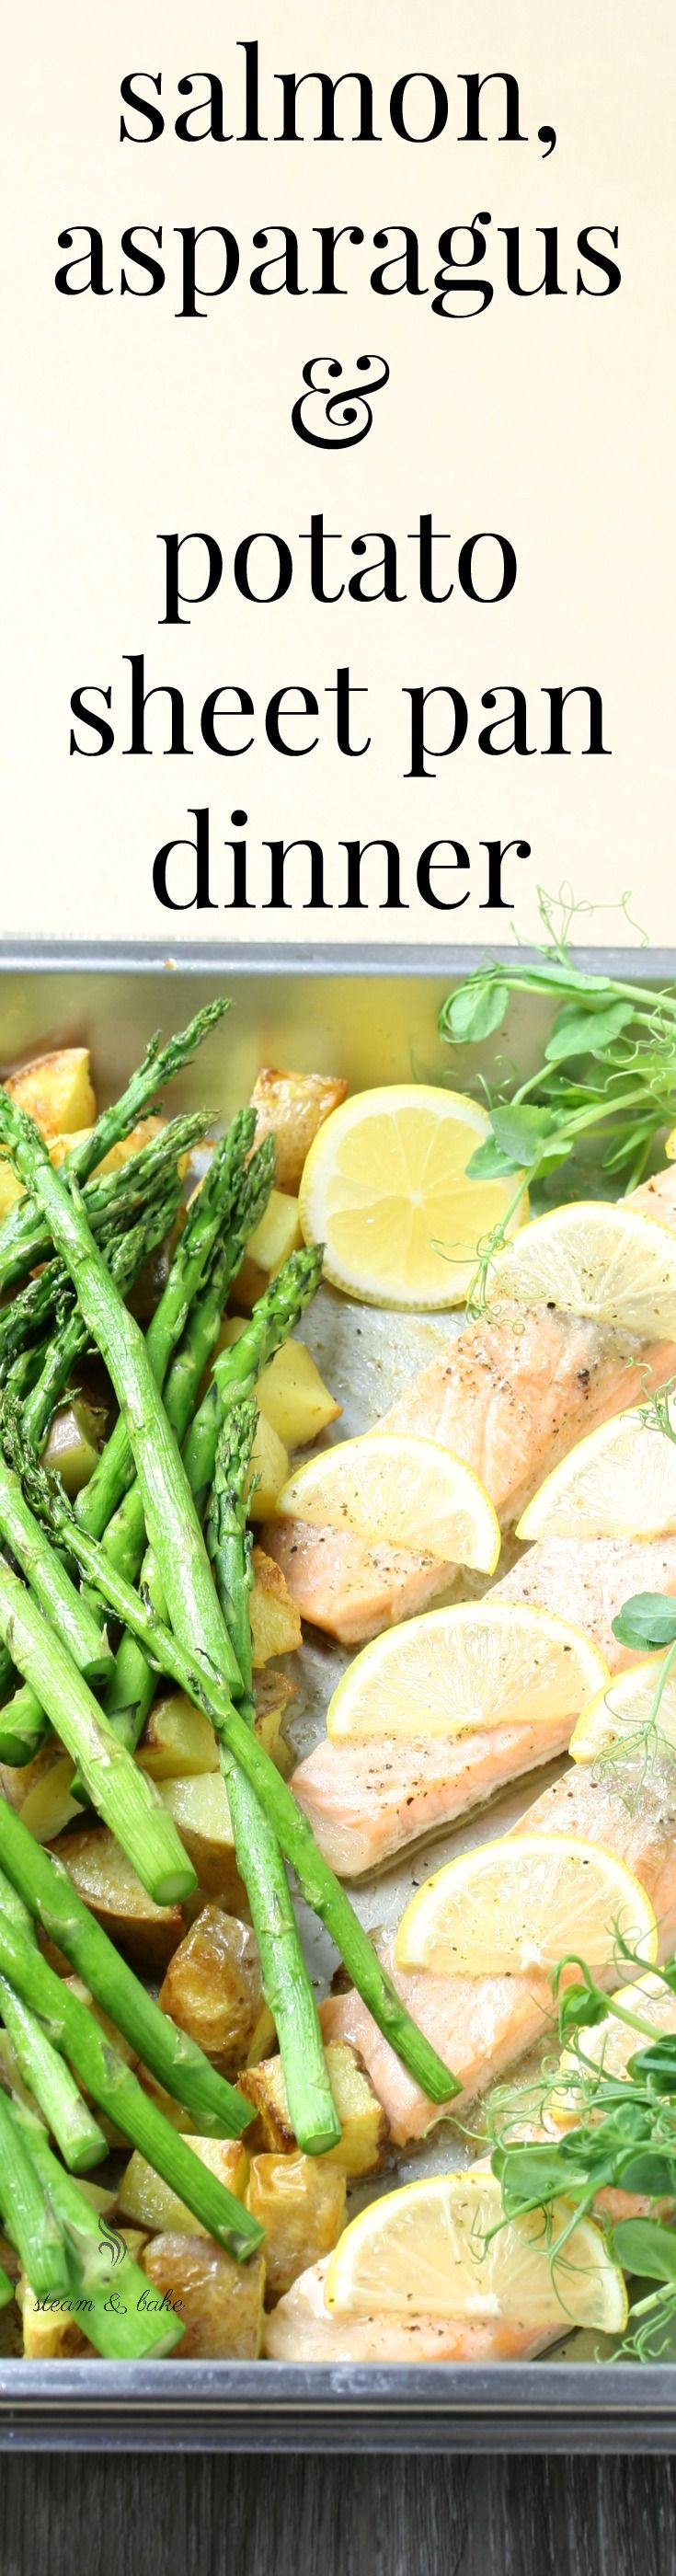 Steam Oven Salmon with Lemon, Asparagus and Potatoes. Easy, speedy healthy recipe, and you can cook it all on the one tray! Complete with cooking methods for both combination steam and steam-only ovens, this will save your weeknight dinners.